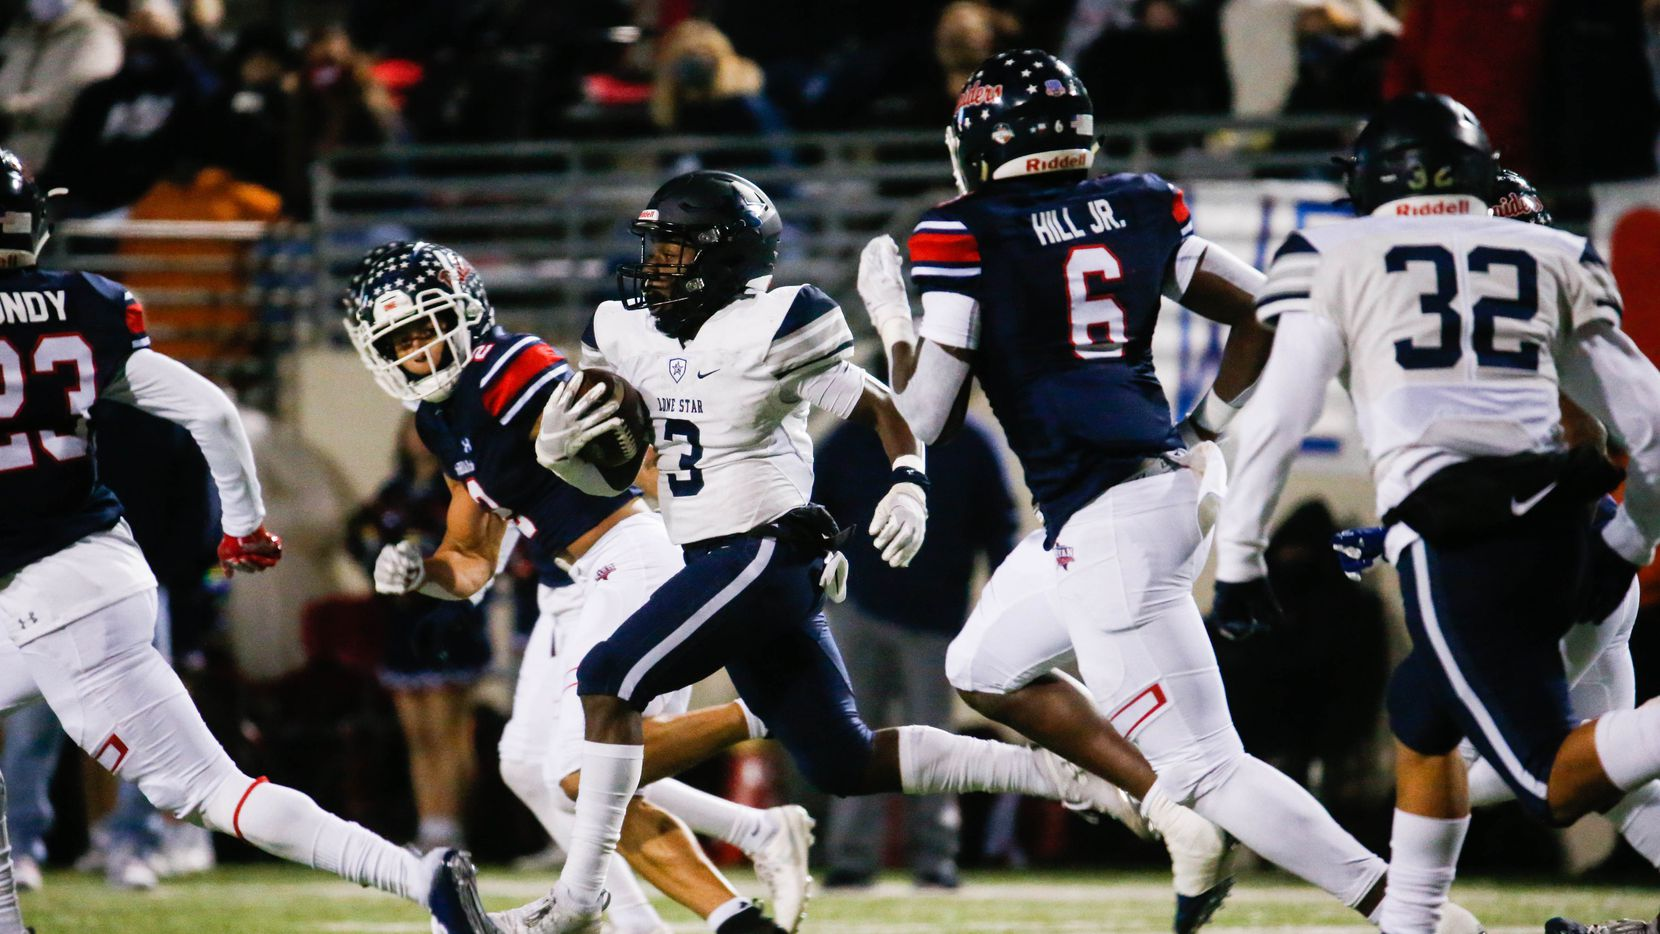 Frisco Lone Star's Tolu Sokoya (3) runs the ball during the first half of a football game against Denton Ryan at the C.H. Collins Complex in Denton on Thursday, Dec. 4, 2020.